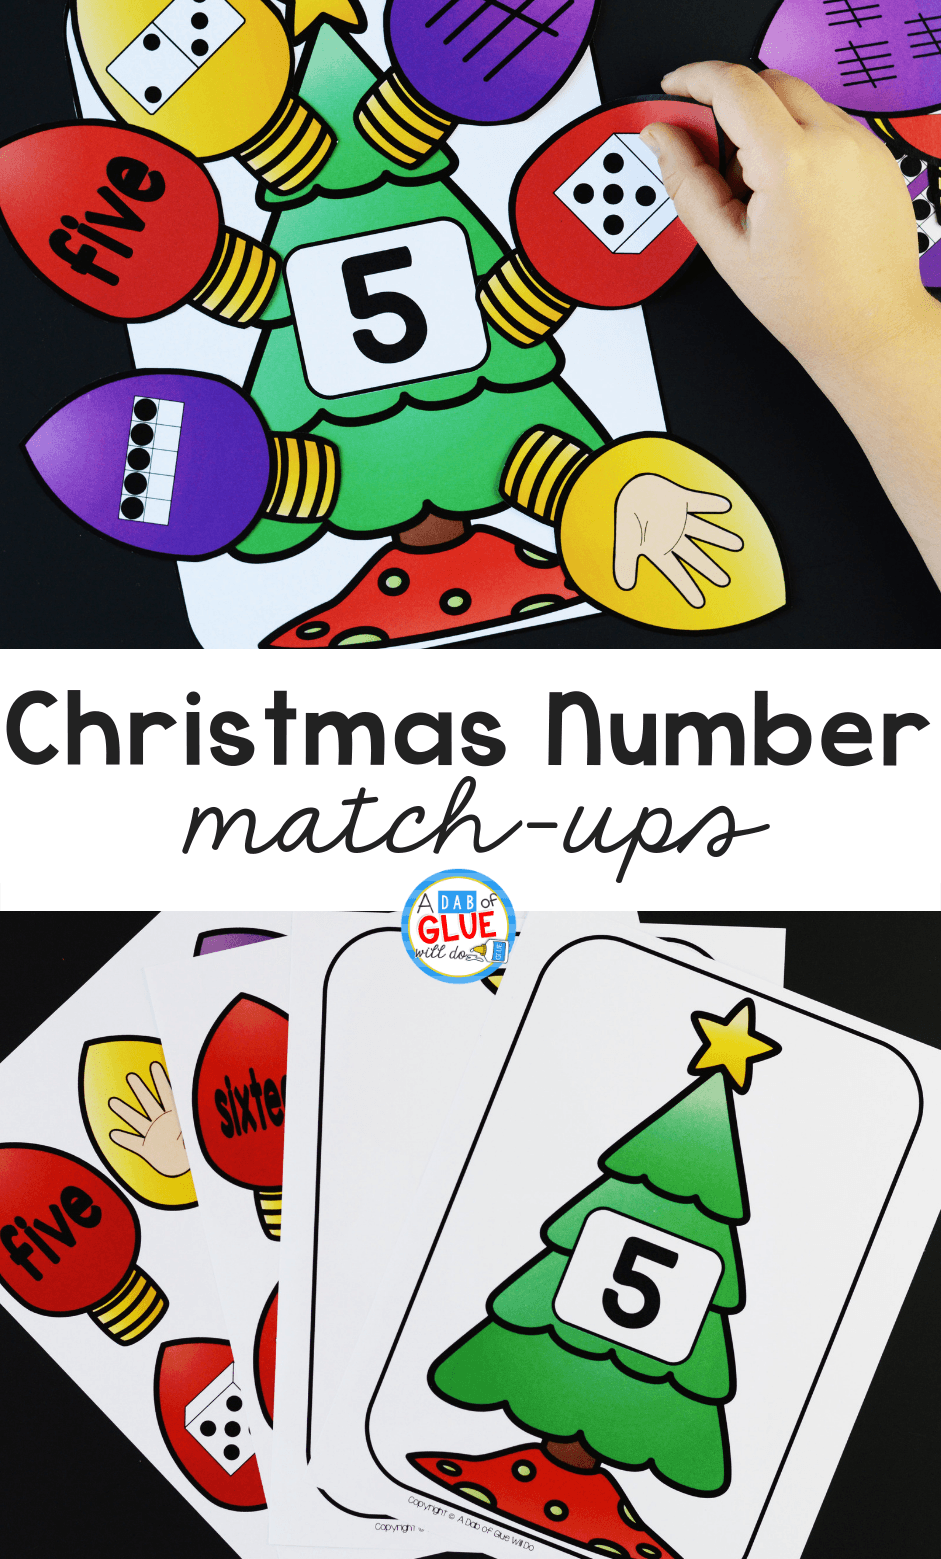 Christmas Number Match-Up